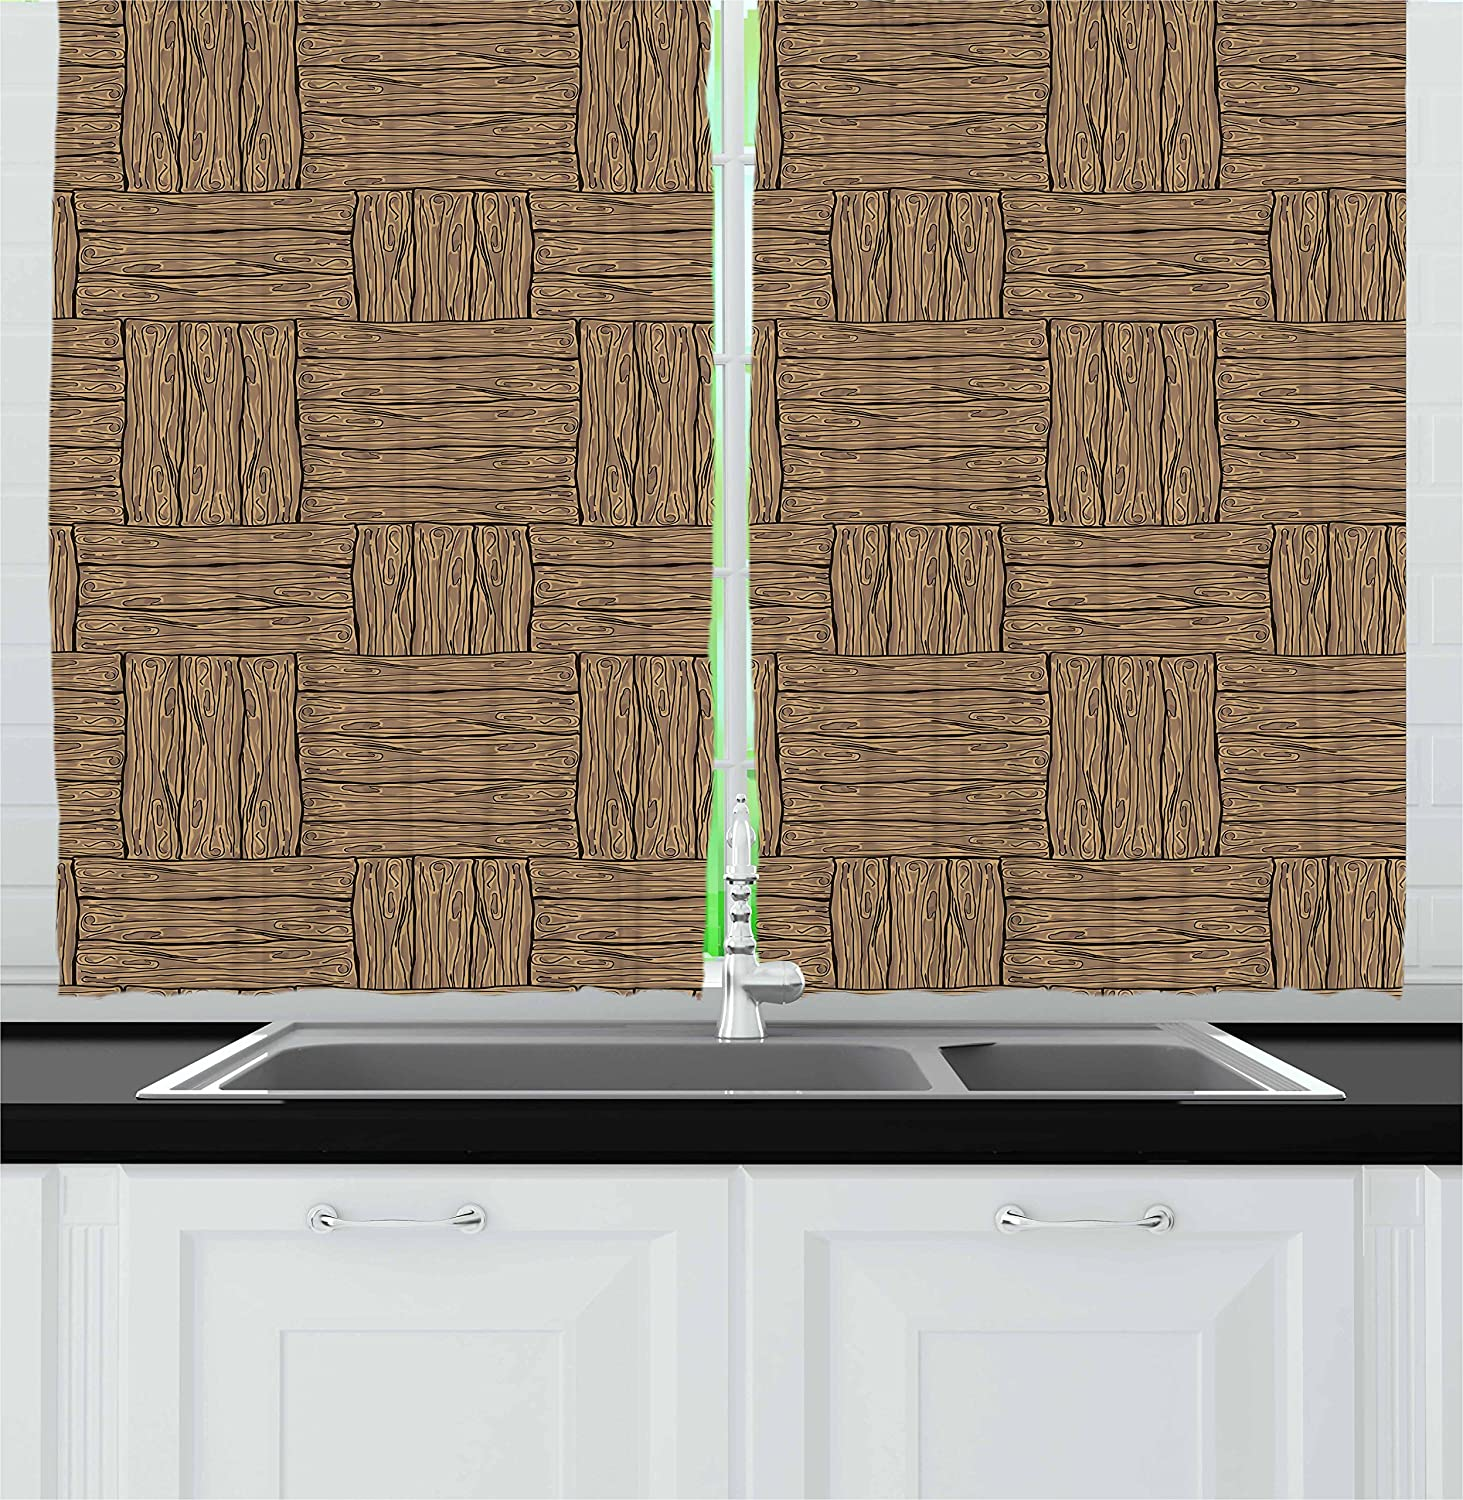 Amazon.com: Ambesonne Rustic Kitchen Curtains, Wooden ...